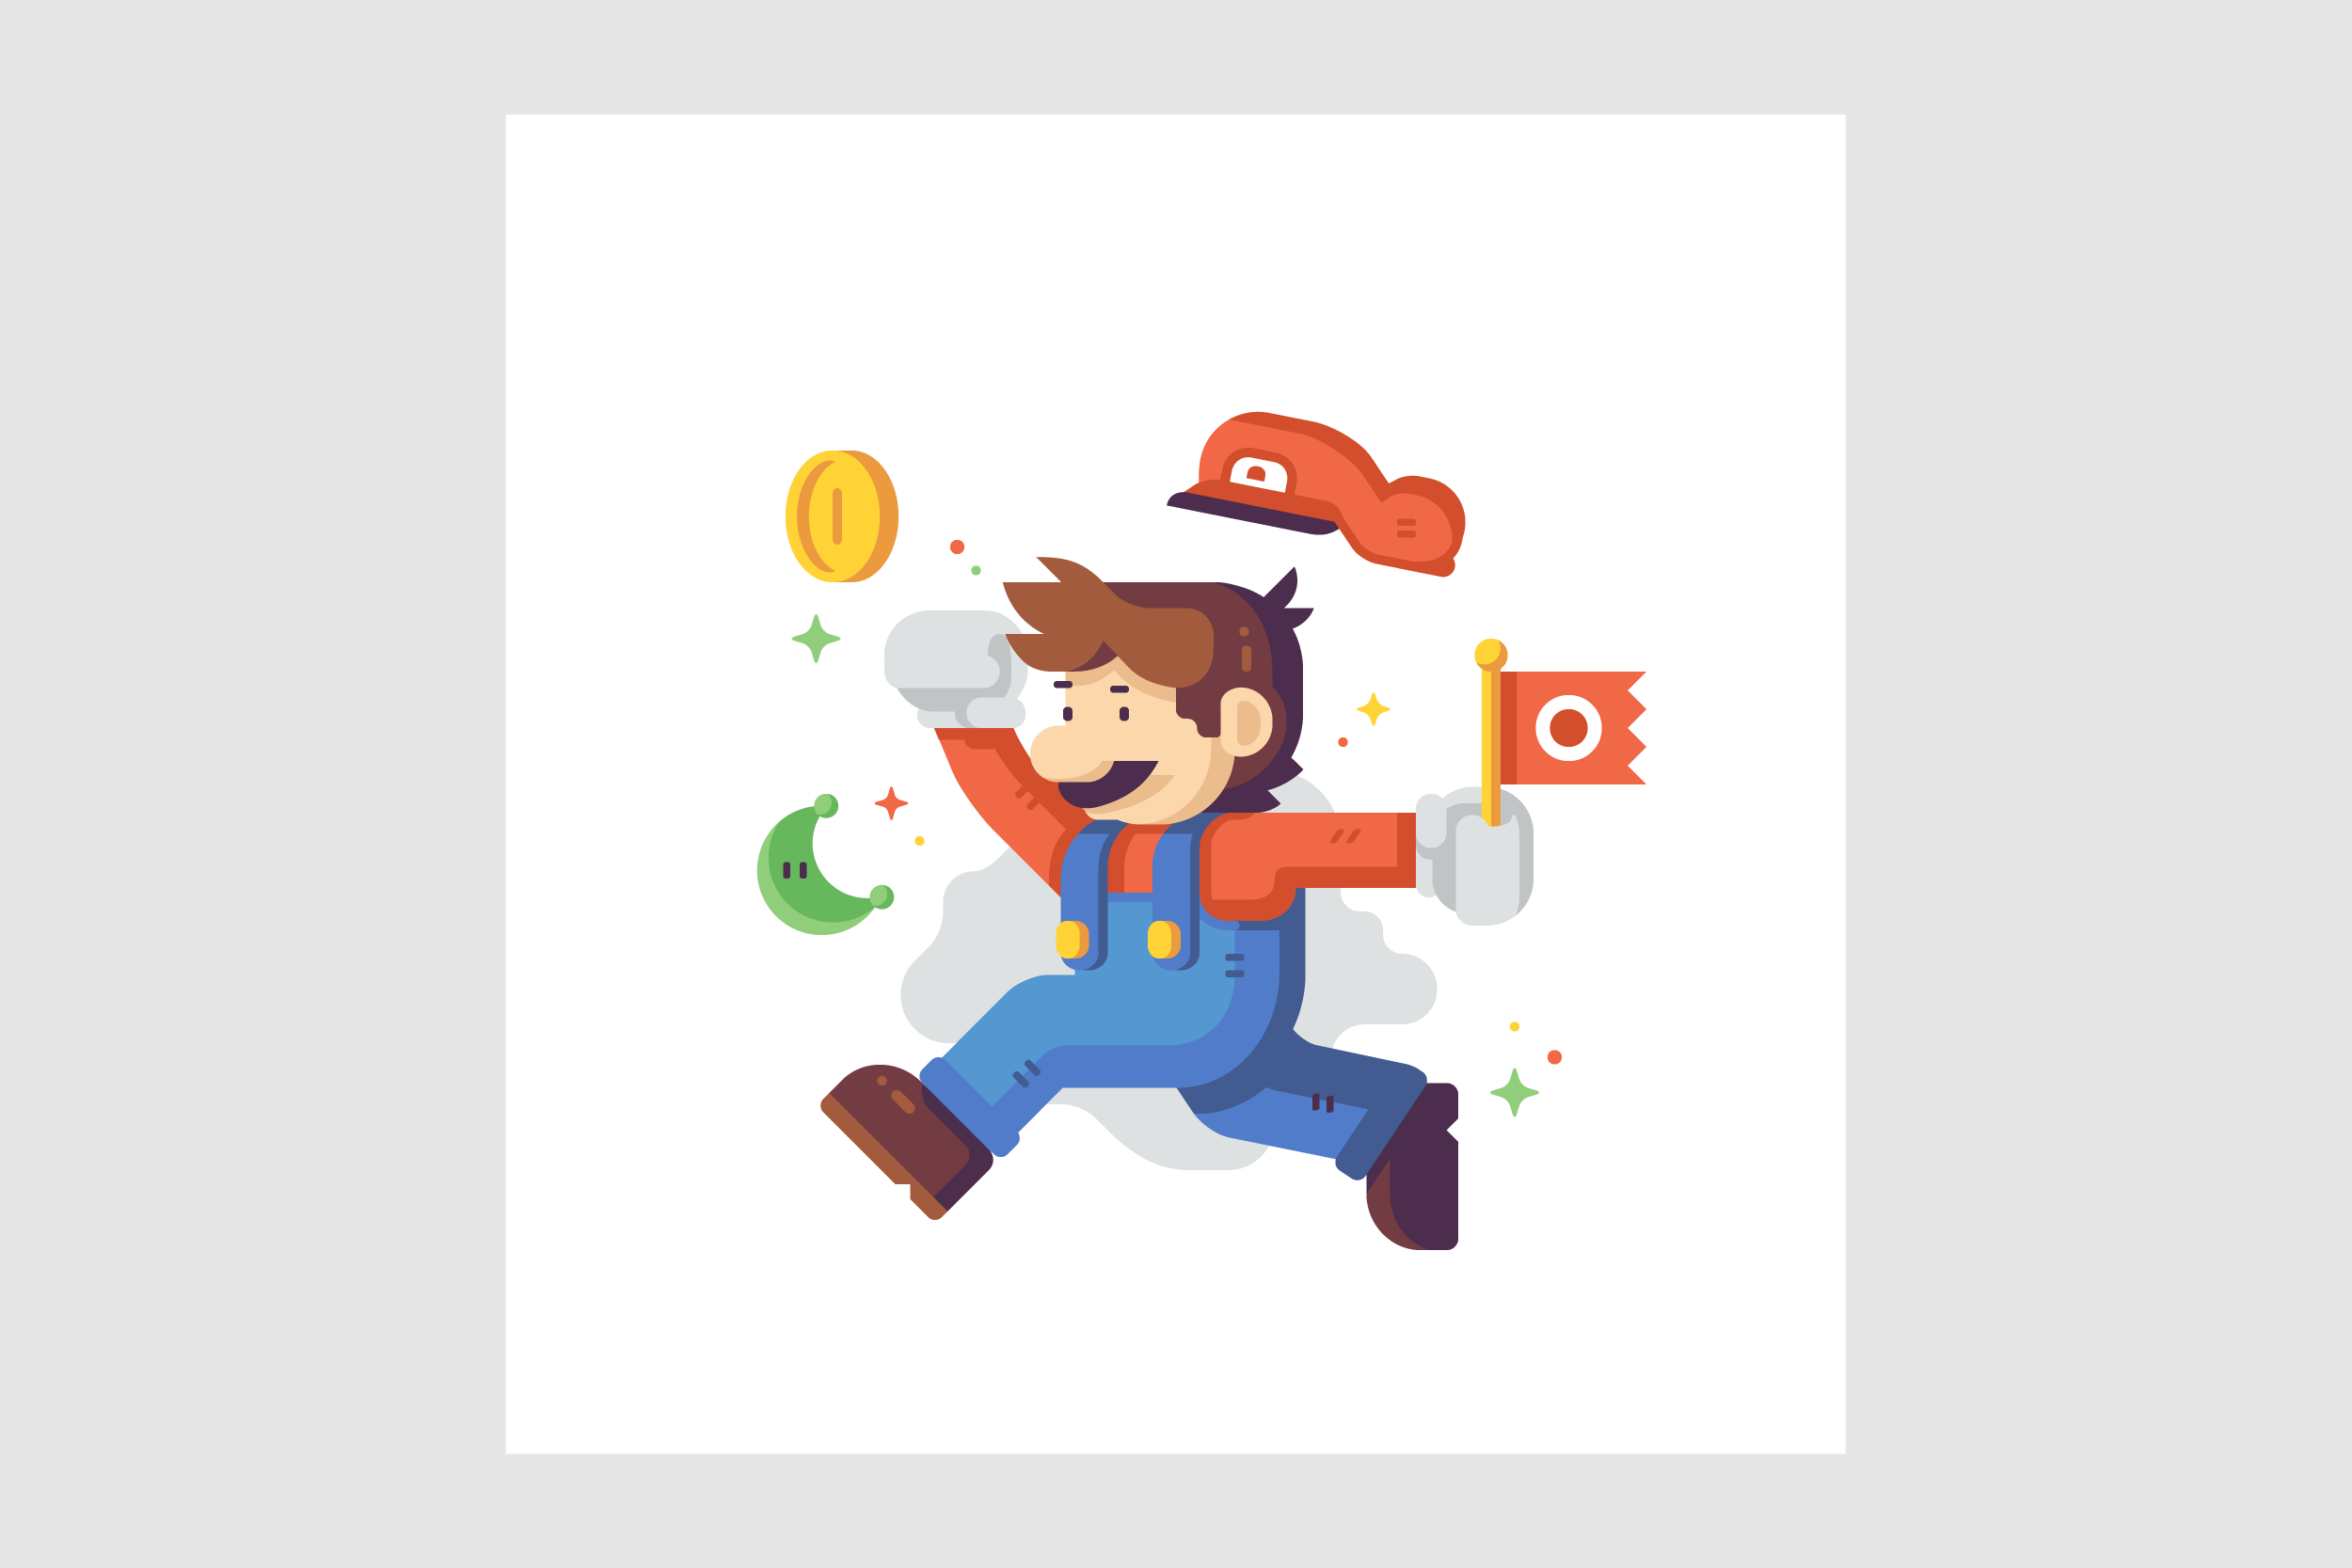 Jump Man Plumber by Matt Anderson. Inspired by Super Mario Odyssey.